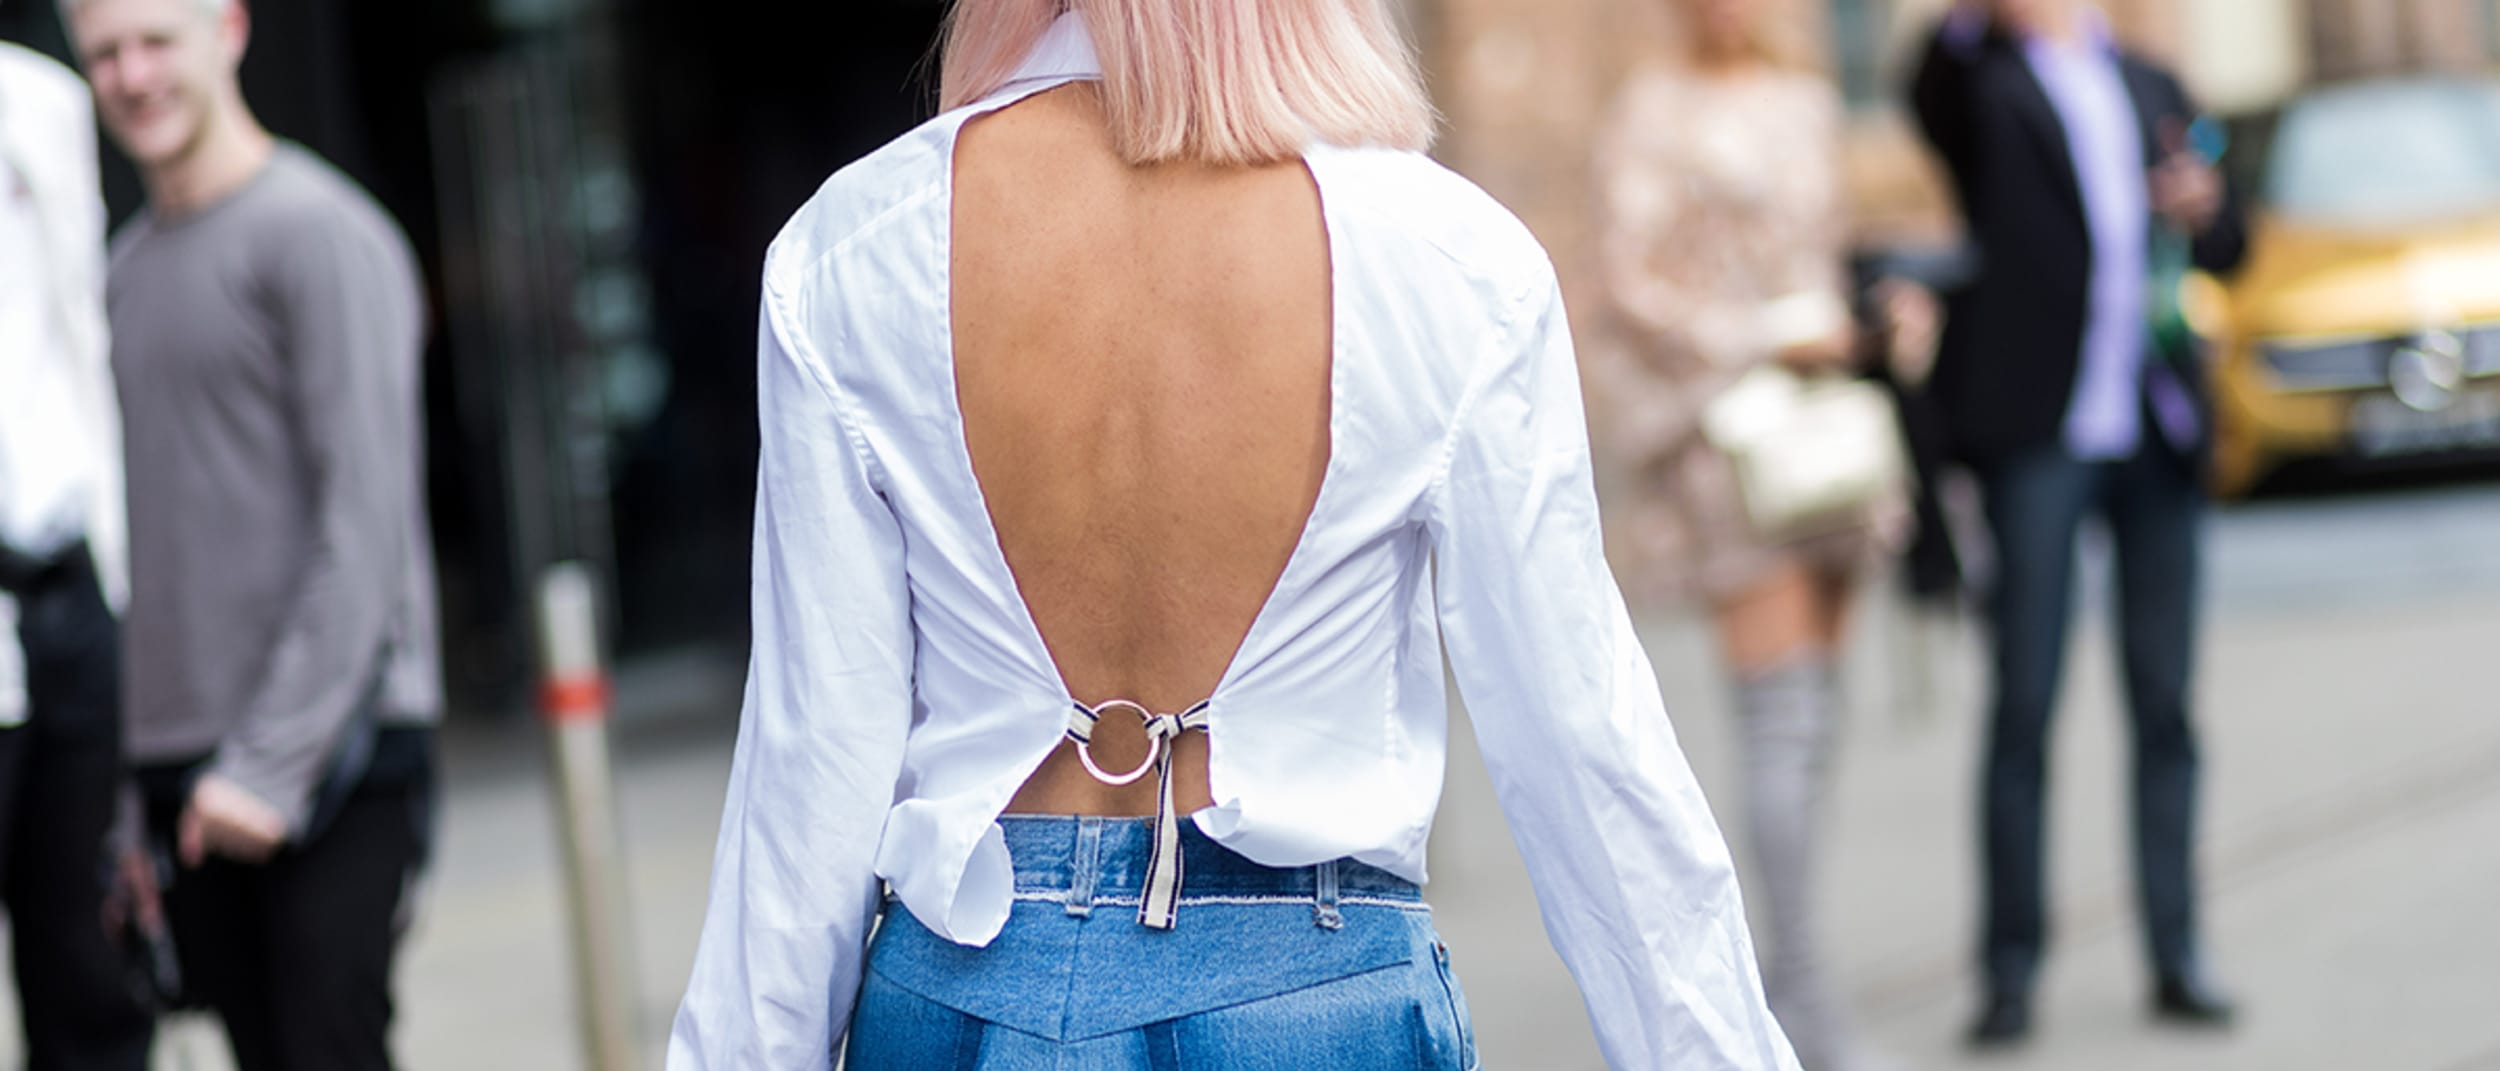 5 reasons you can't find anything to wear and how to fix it